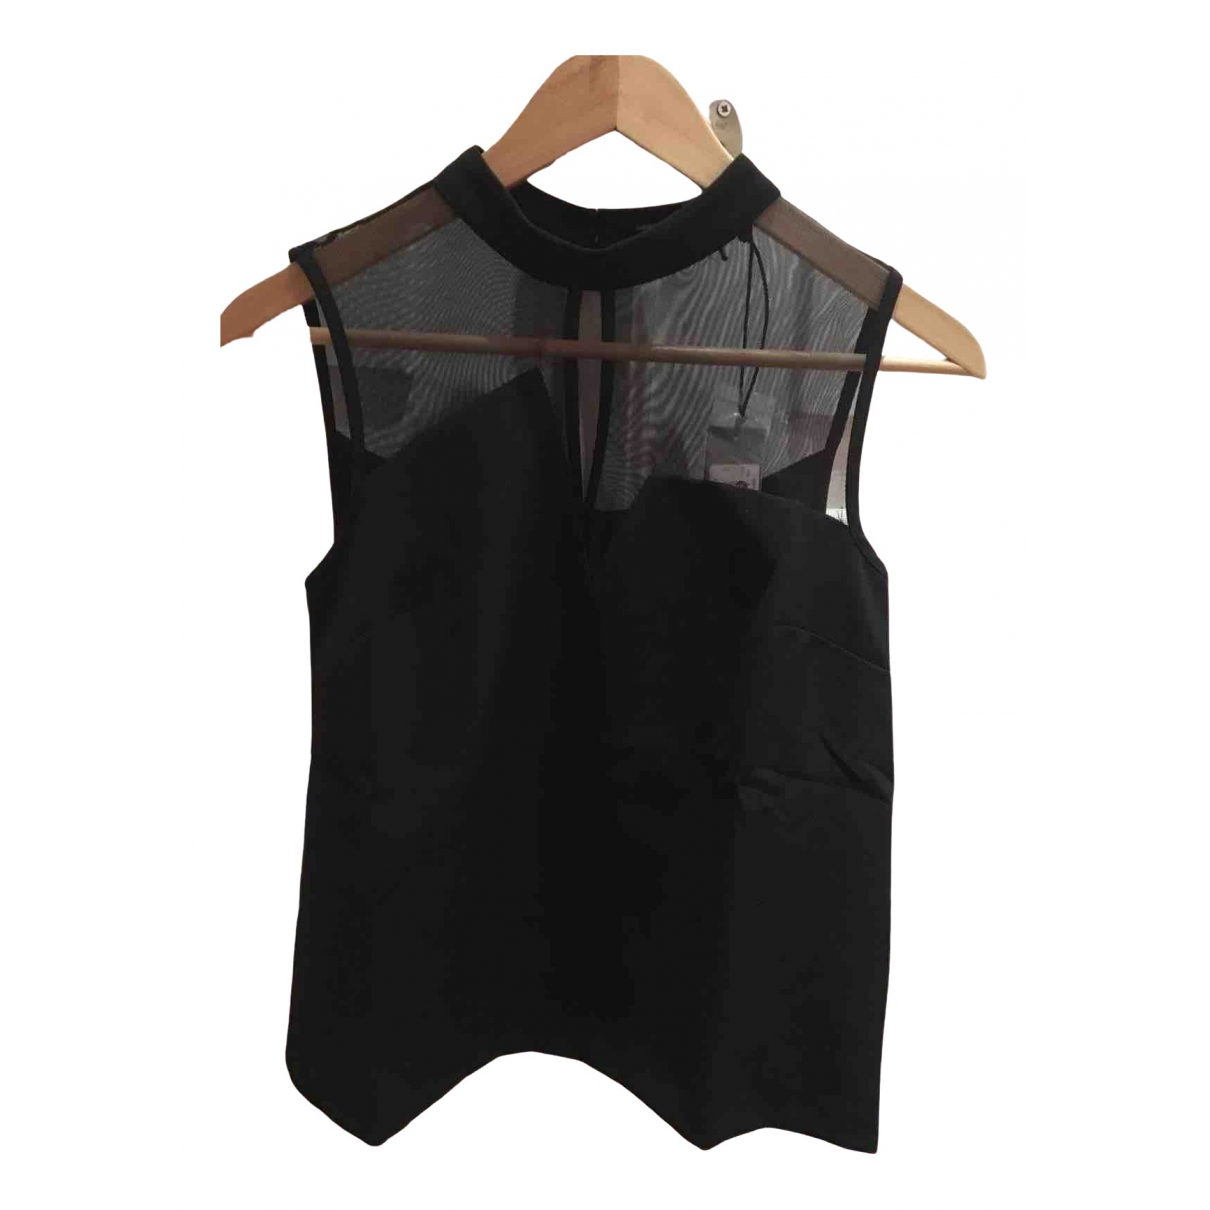 Guess \N Black  top for Women S International